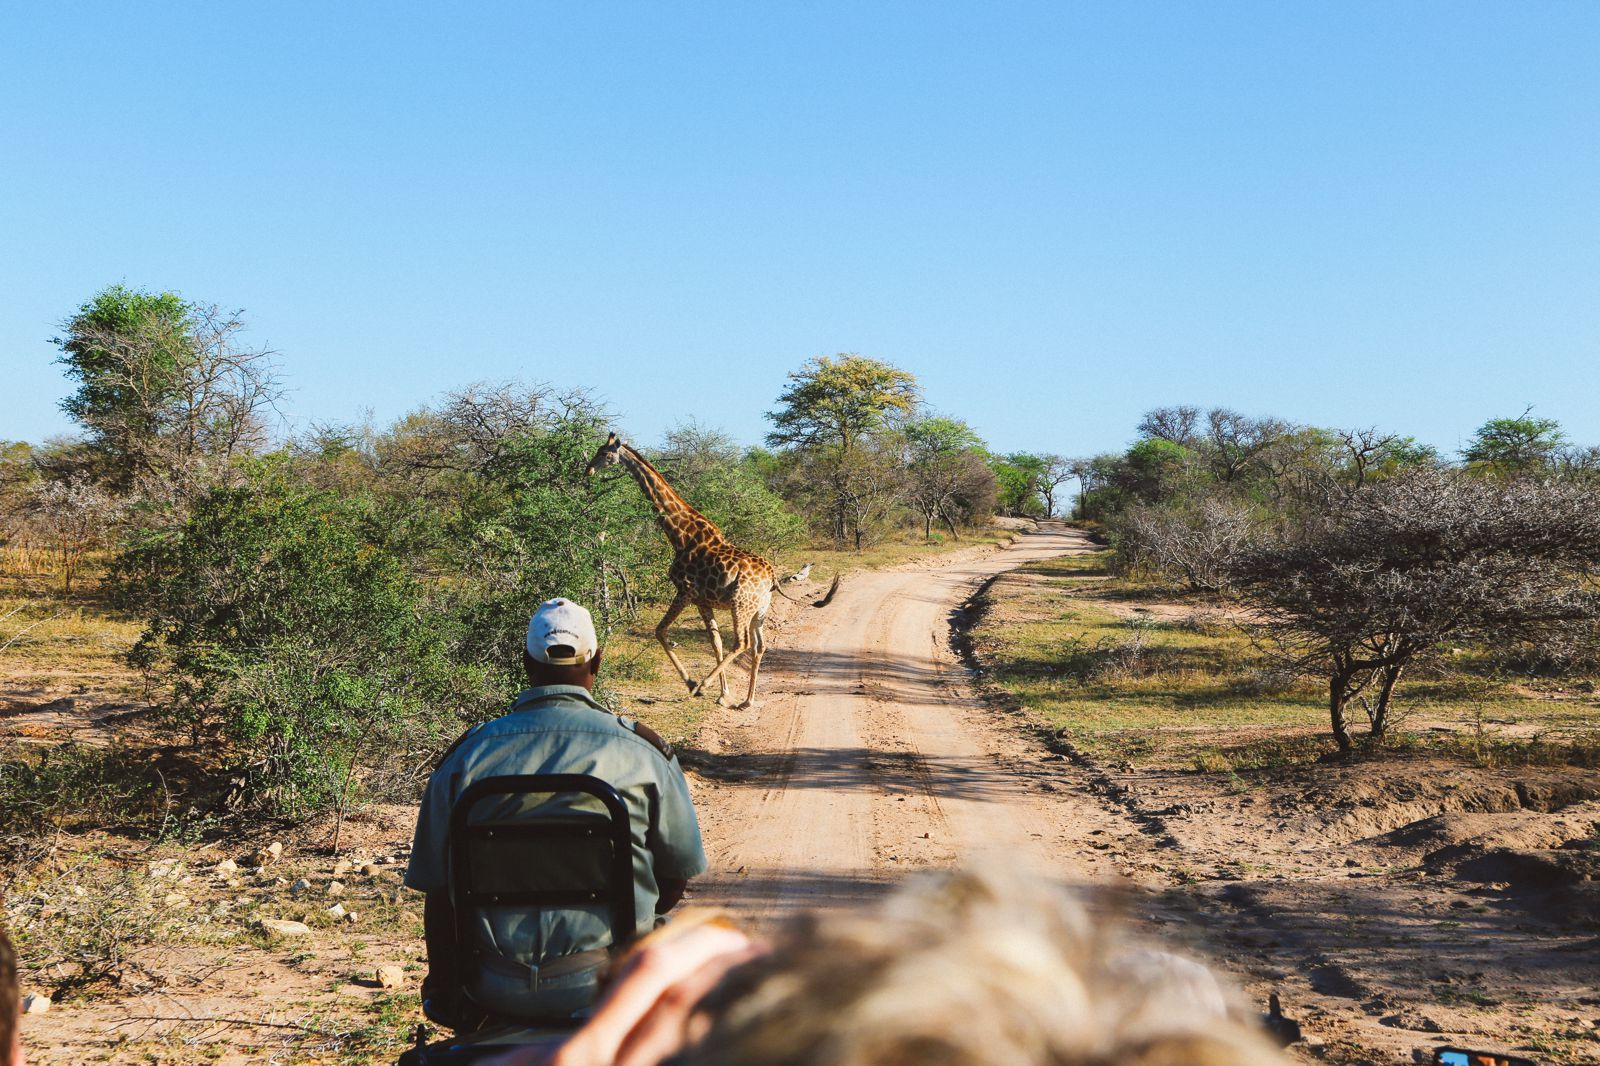 Midnight Lions, Skittish Giraffes And The Deadliest Of The Safari Big 5 In South Africa (39)